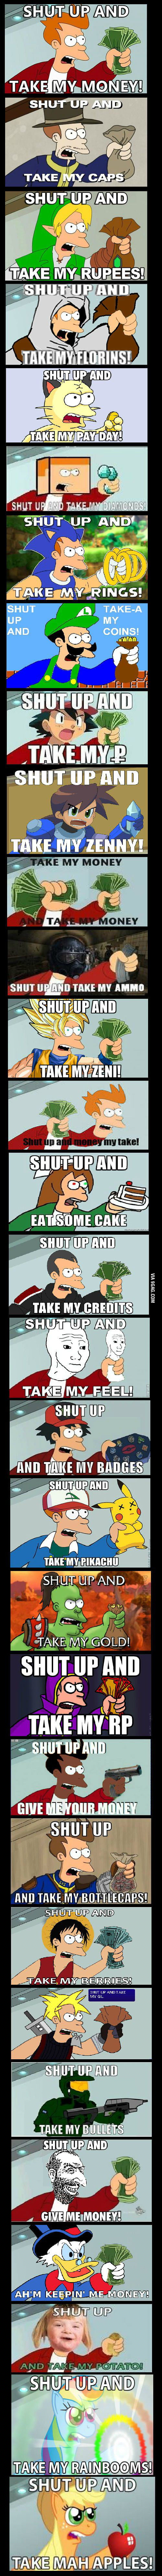 Compilation Of Fry Meme Shut Up And Take My Money 9gag